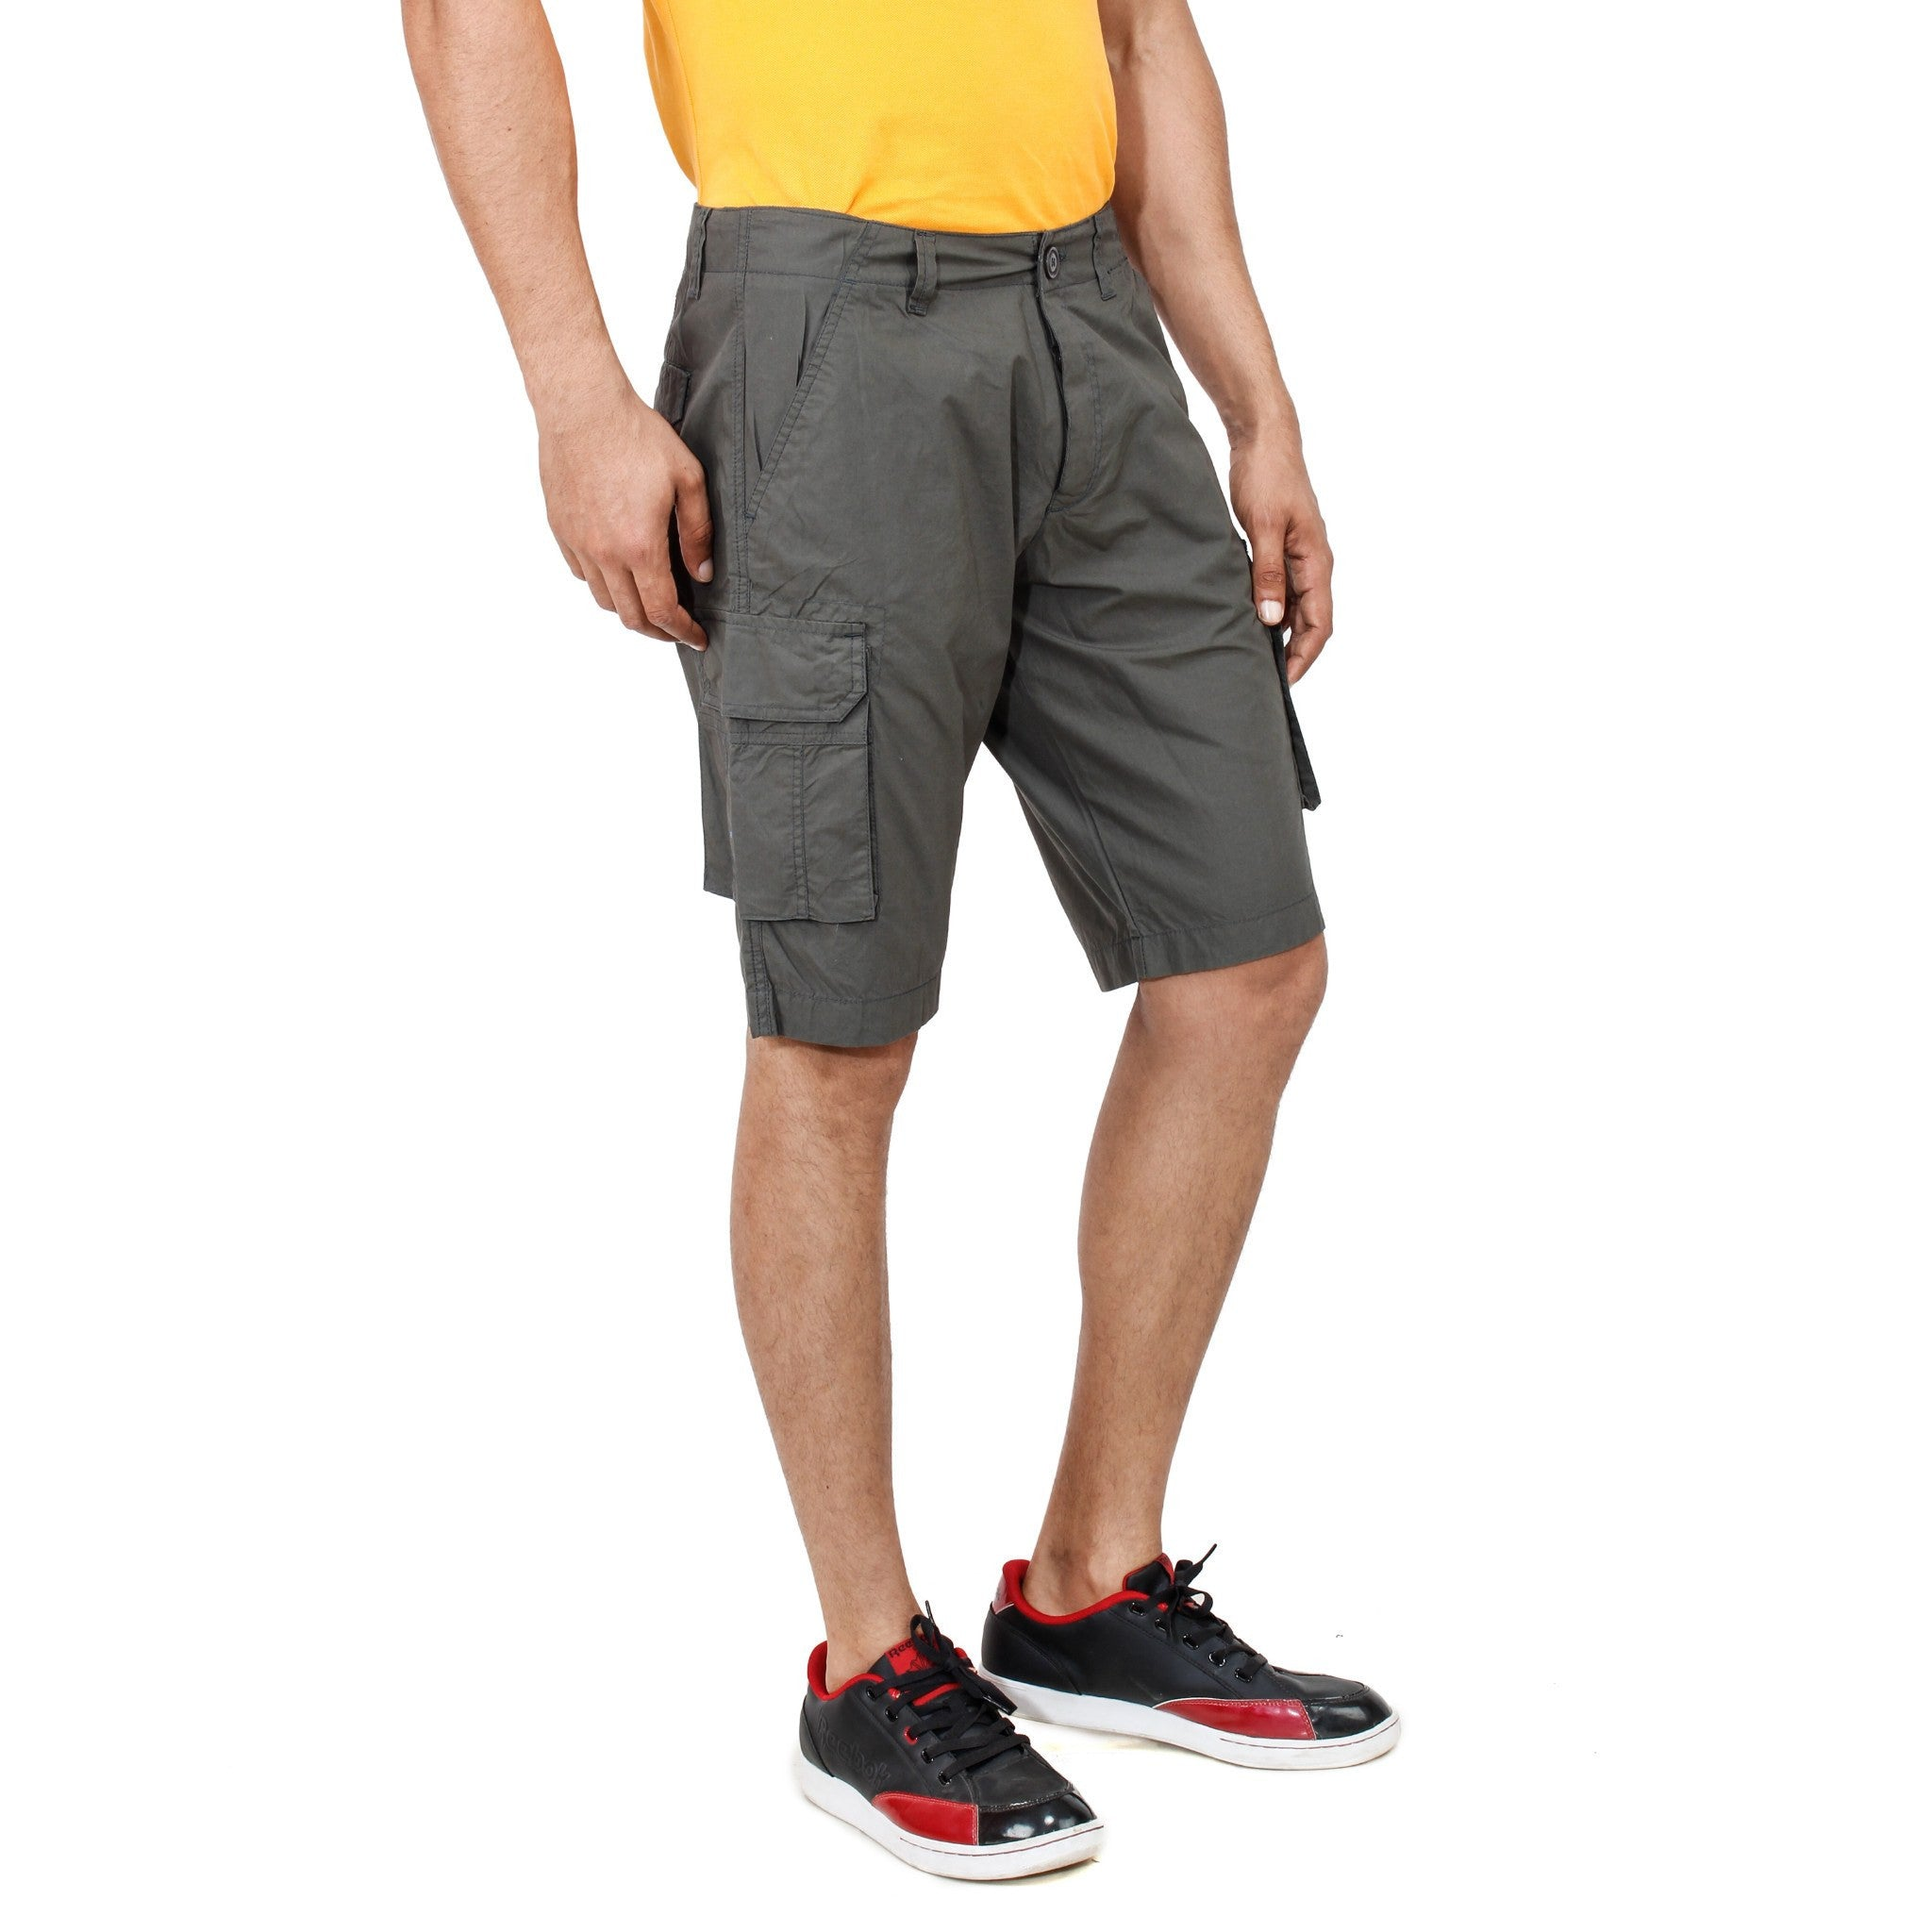 Uber Dimgray Pop Shorts right side view